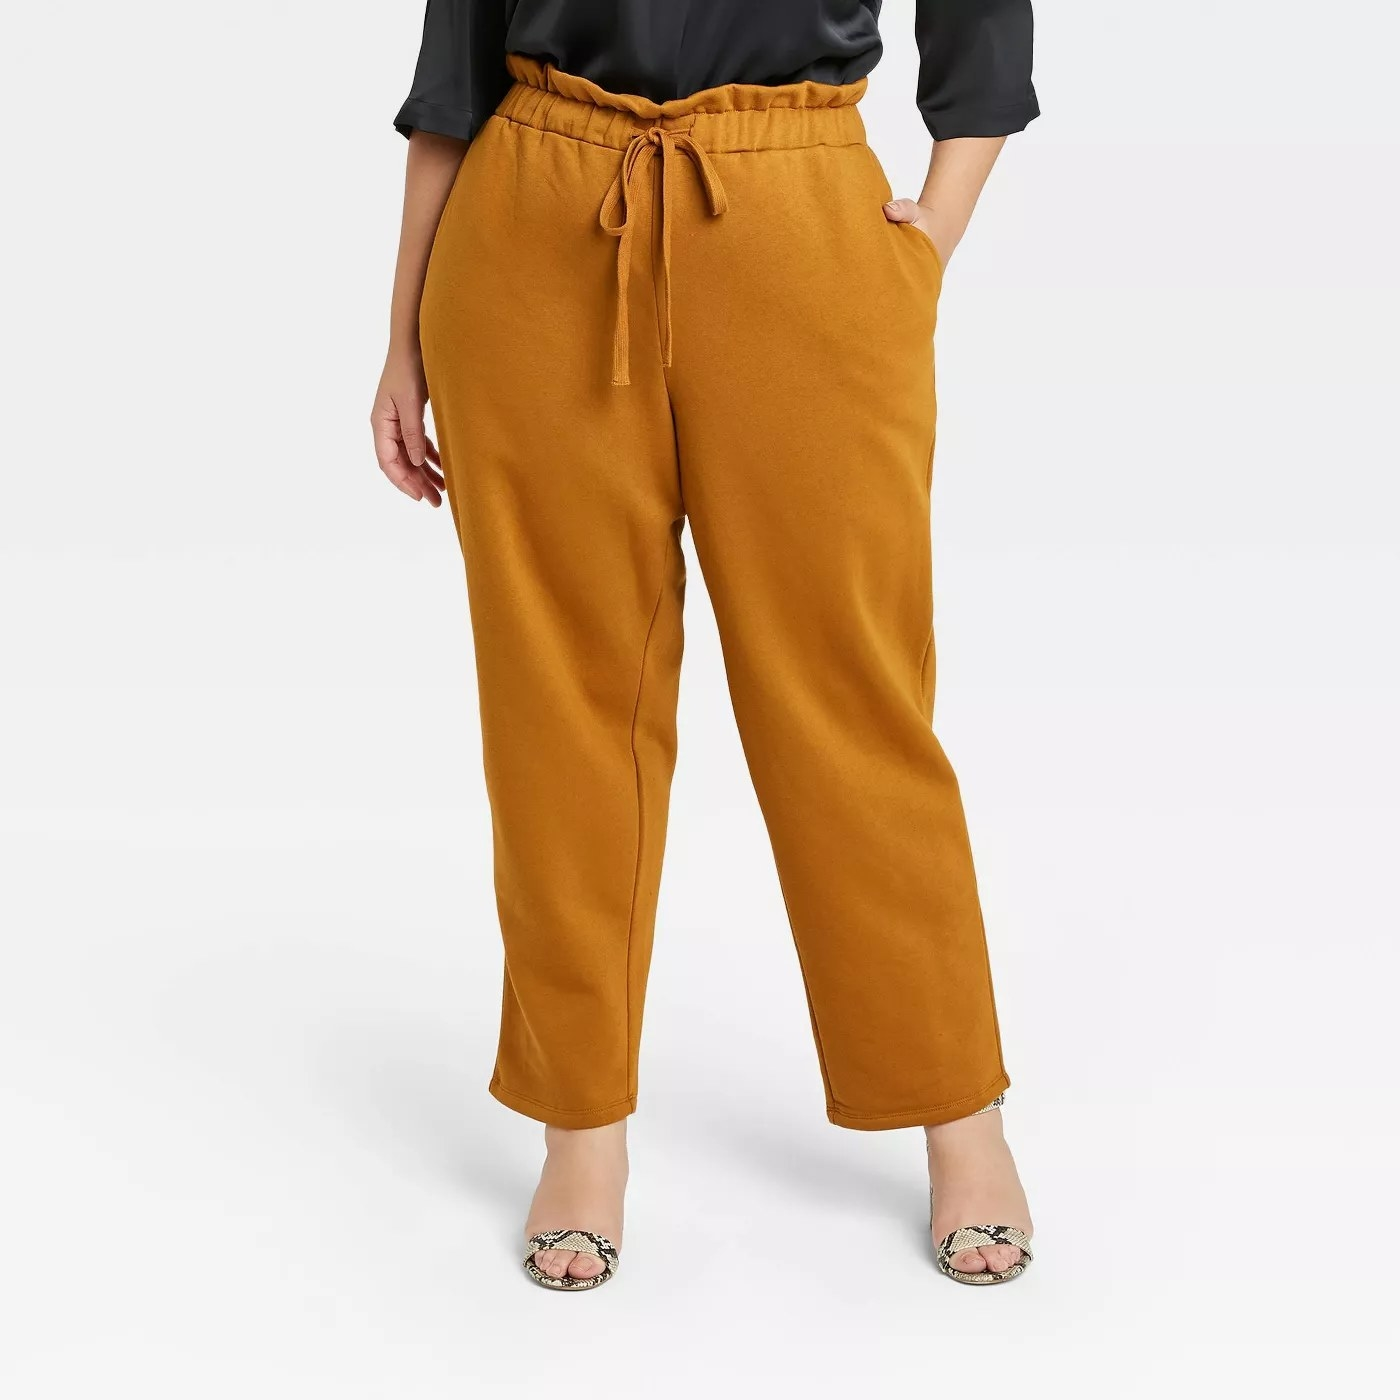 Mustard colored jogger pants paired with open toe python heels